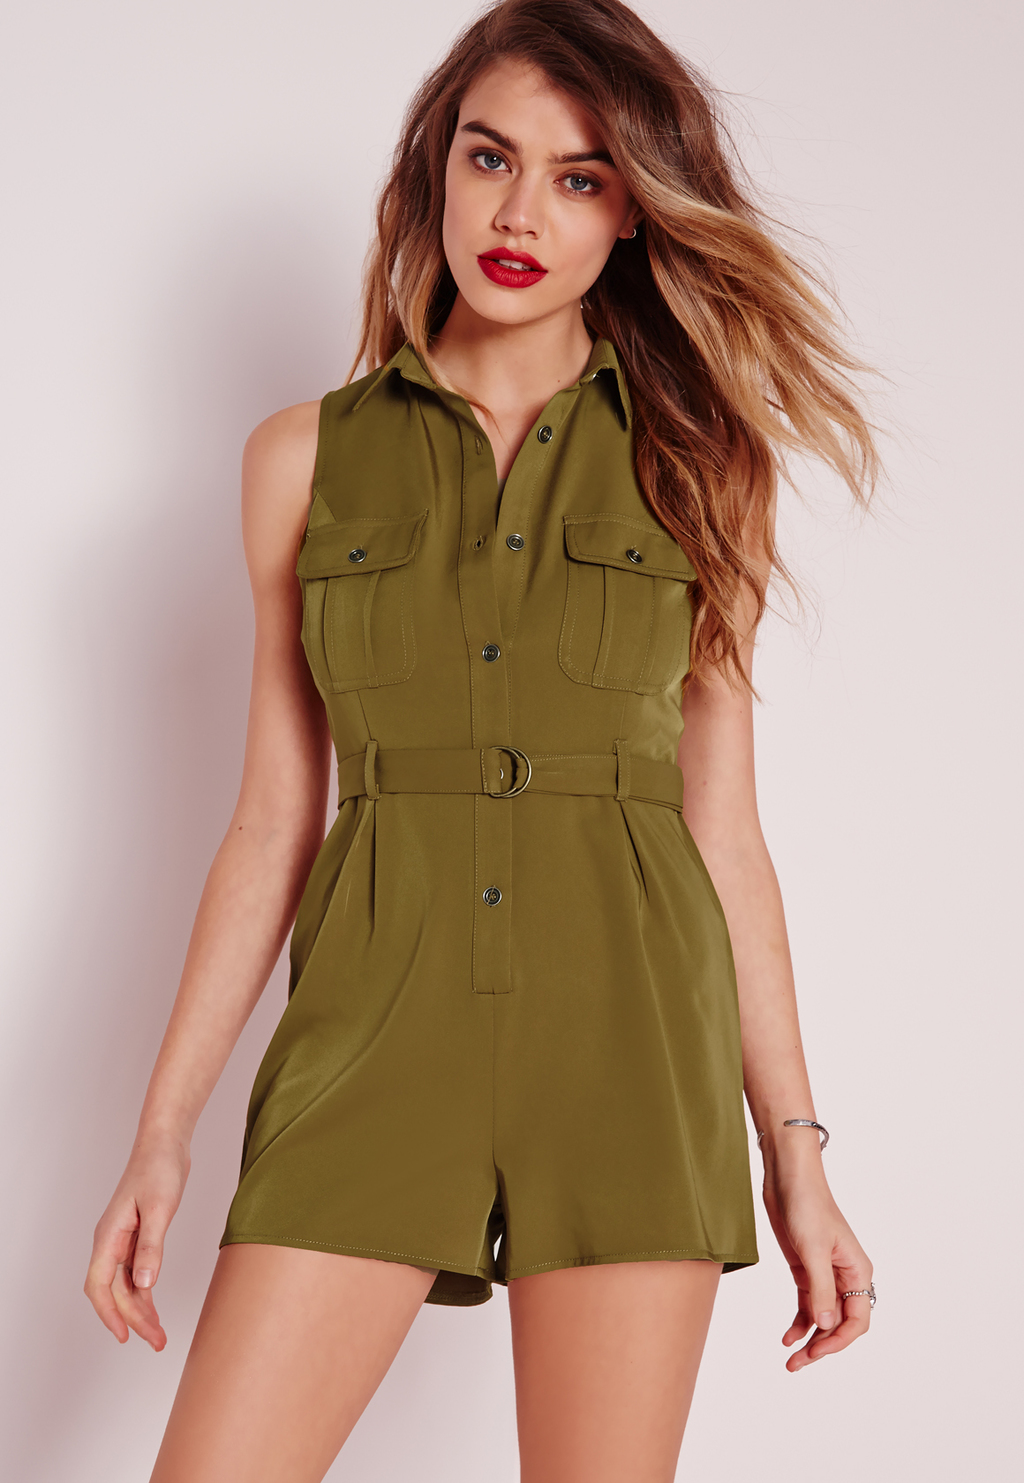 Pocket Front D Ring Pocket Playsuit Khaki, Beige - neckline: shirt collar/peter pan/zip with opening; fit: fitted at waist; pattern: plain; sleeve style: sleeveless; bust detail: pocket detail at bust; waist detail: belted waist/tie at waist/drawstring; length: mid thigh shorts; predominant colour: khaki; occasions: casual, creative work; fibres: polyester/polyamide - 100%; sleeve length: sleeveless; texture group: sheer fabrics/chiffon/organza etc.; style: playsuit; pattern type: fabric; season: s/s 2016